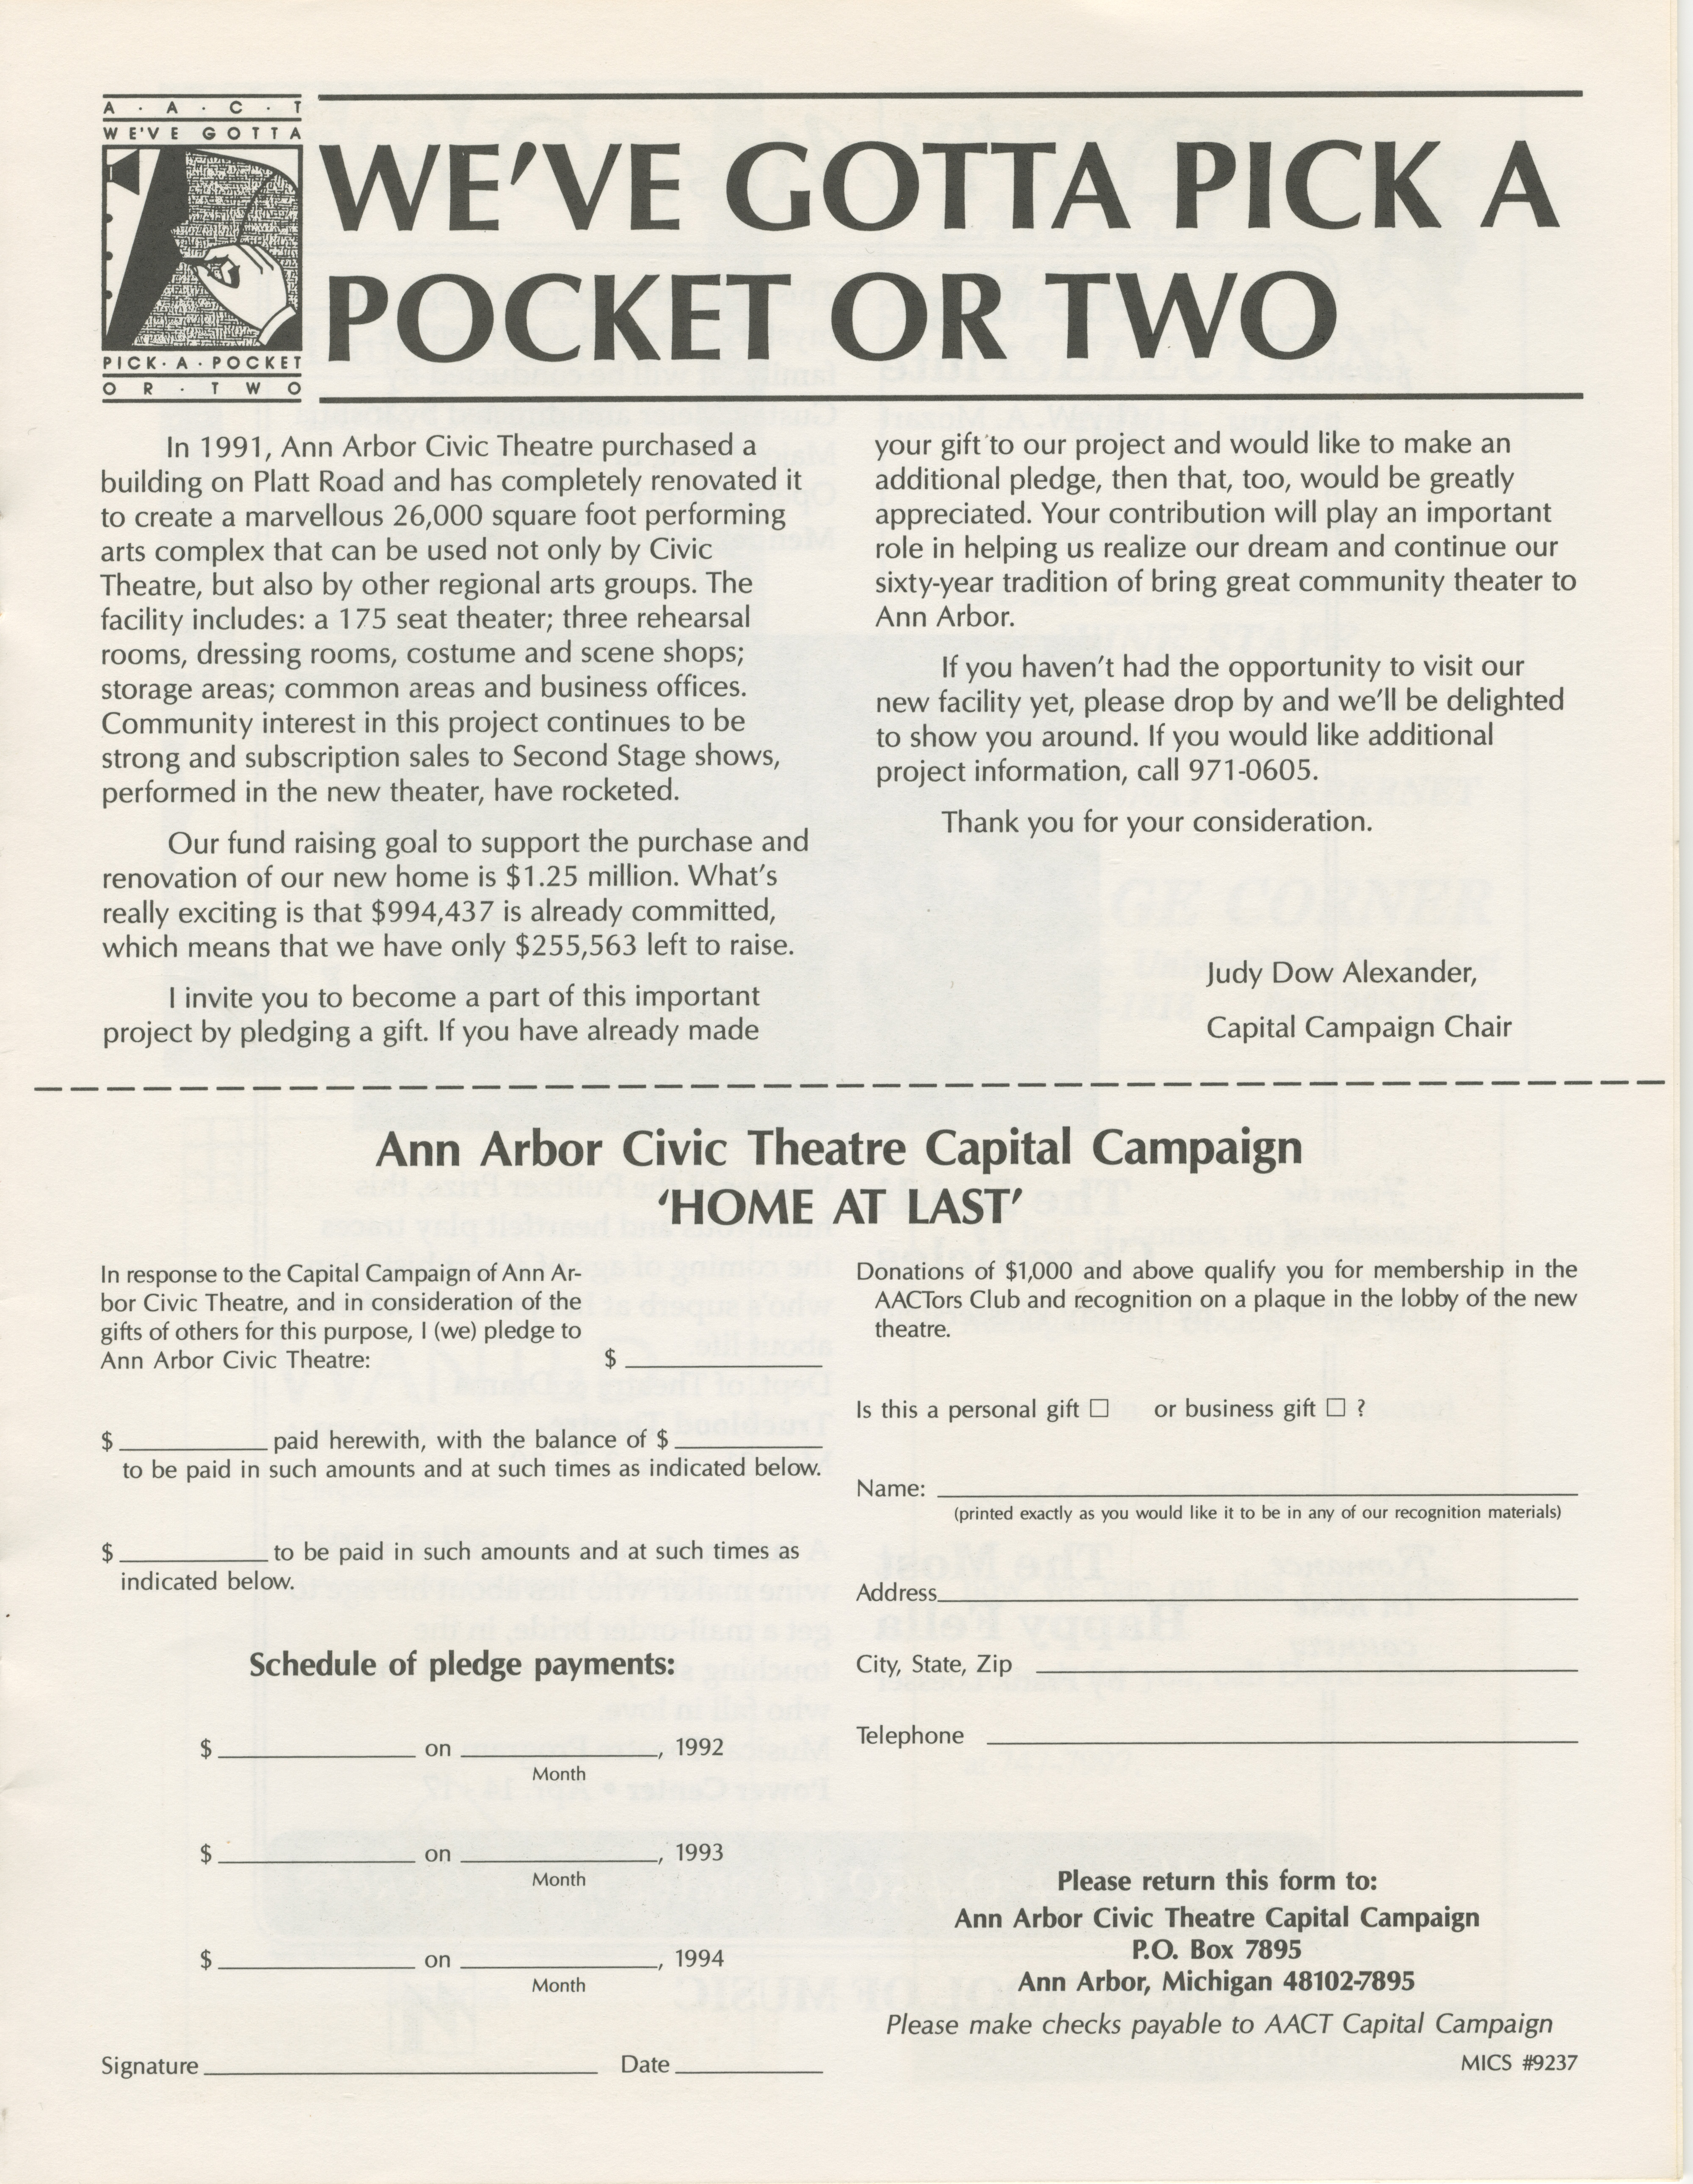 Ann Arbor Civic Theatre Program: Much Ado about Nothing, February 23, 1994 image